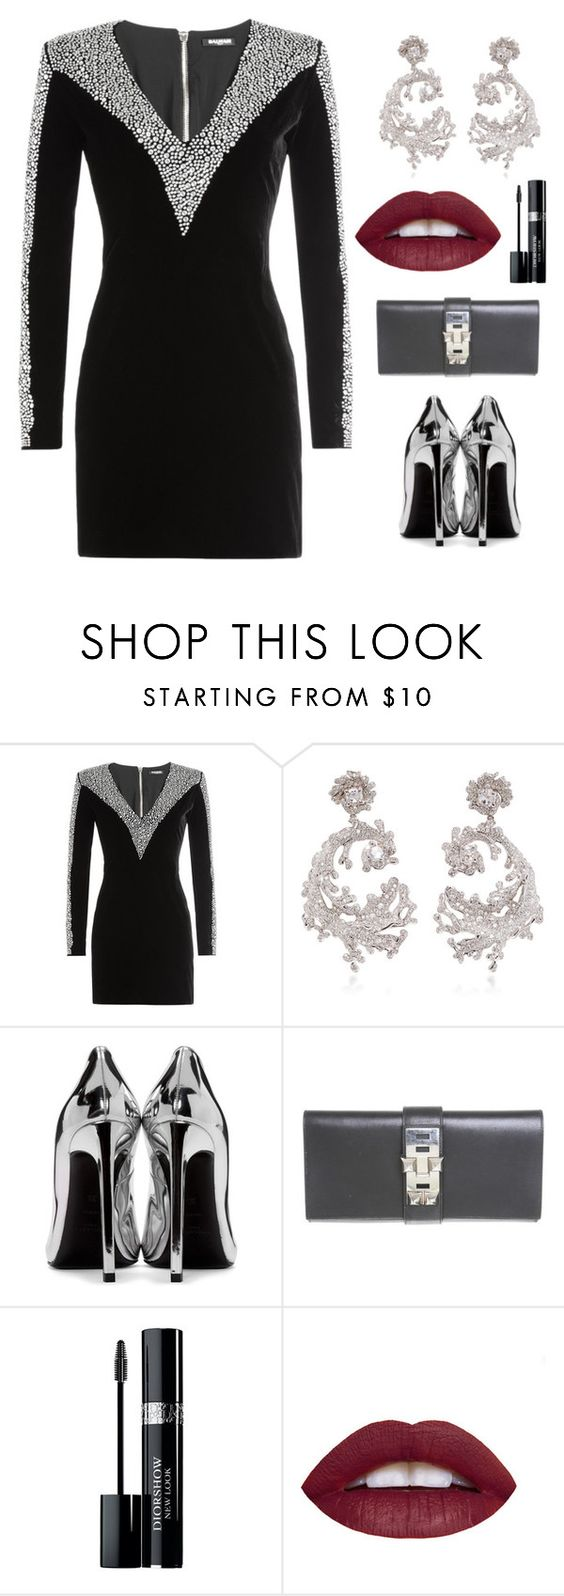 """Party"" by sleeknsheek ❤ liked on Polyvore featuring Balmain, Neha Dani, Yves Saint Laurent, Hermès and Christian Dior"